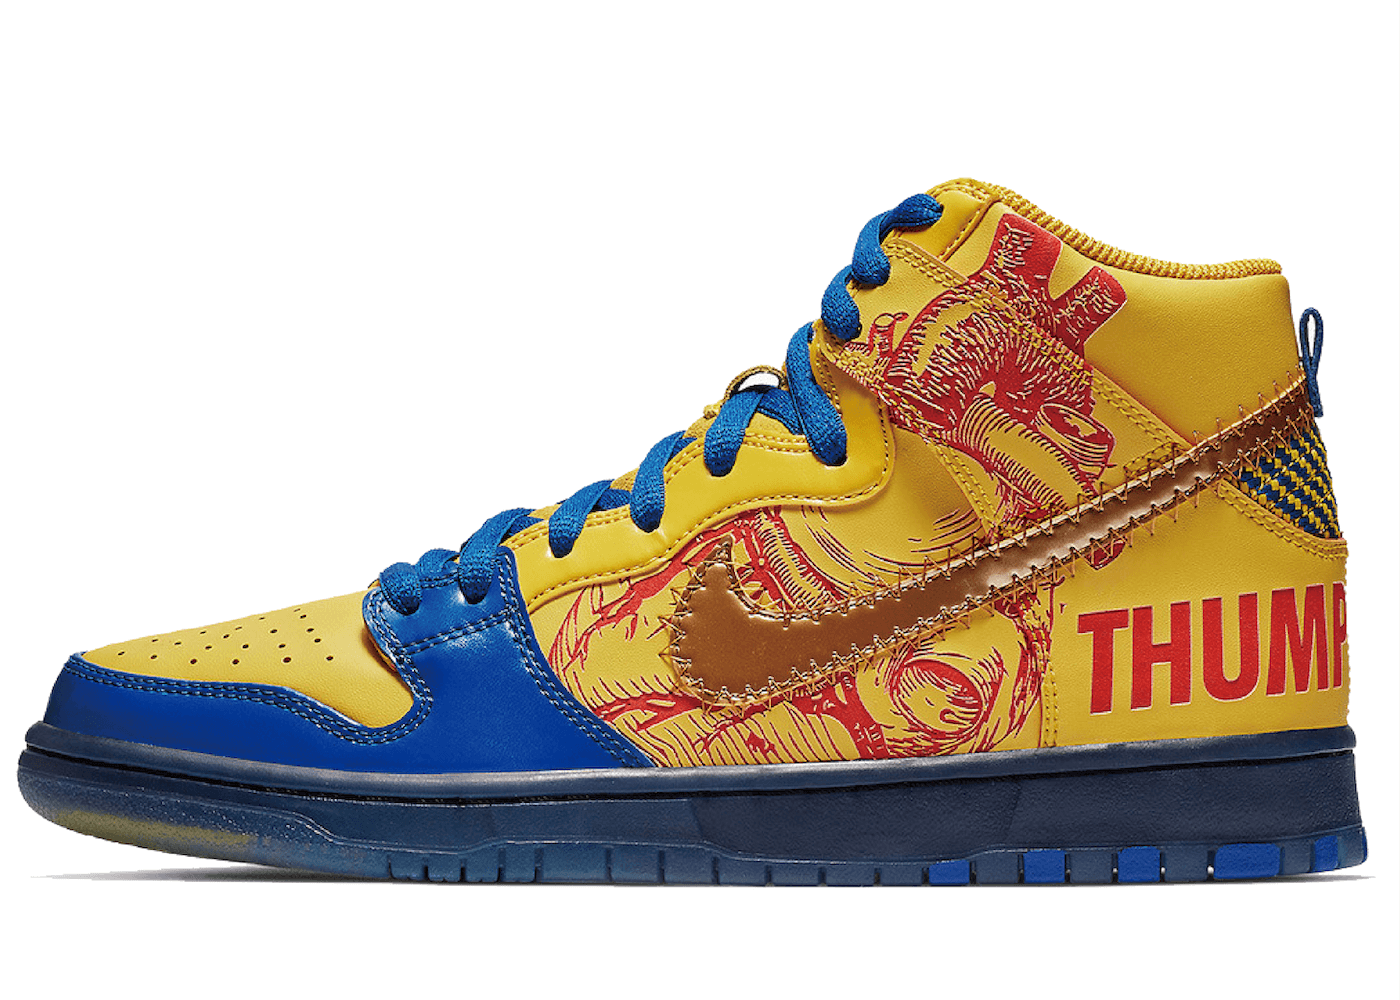 Nike SB Dunk High Finnigan Mooney 15th Anniversary Doernbecher (2019)の写真